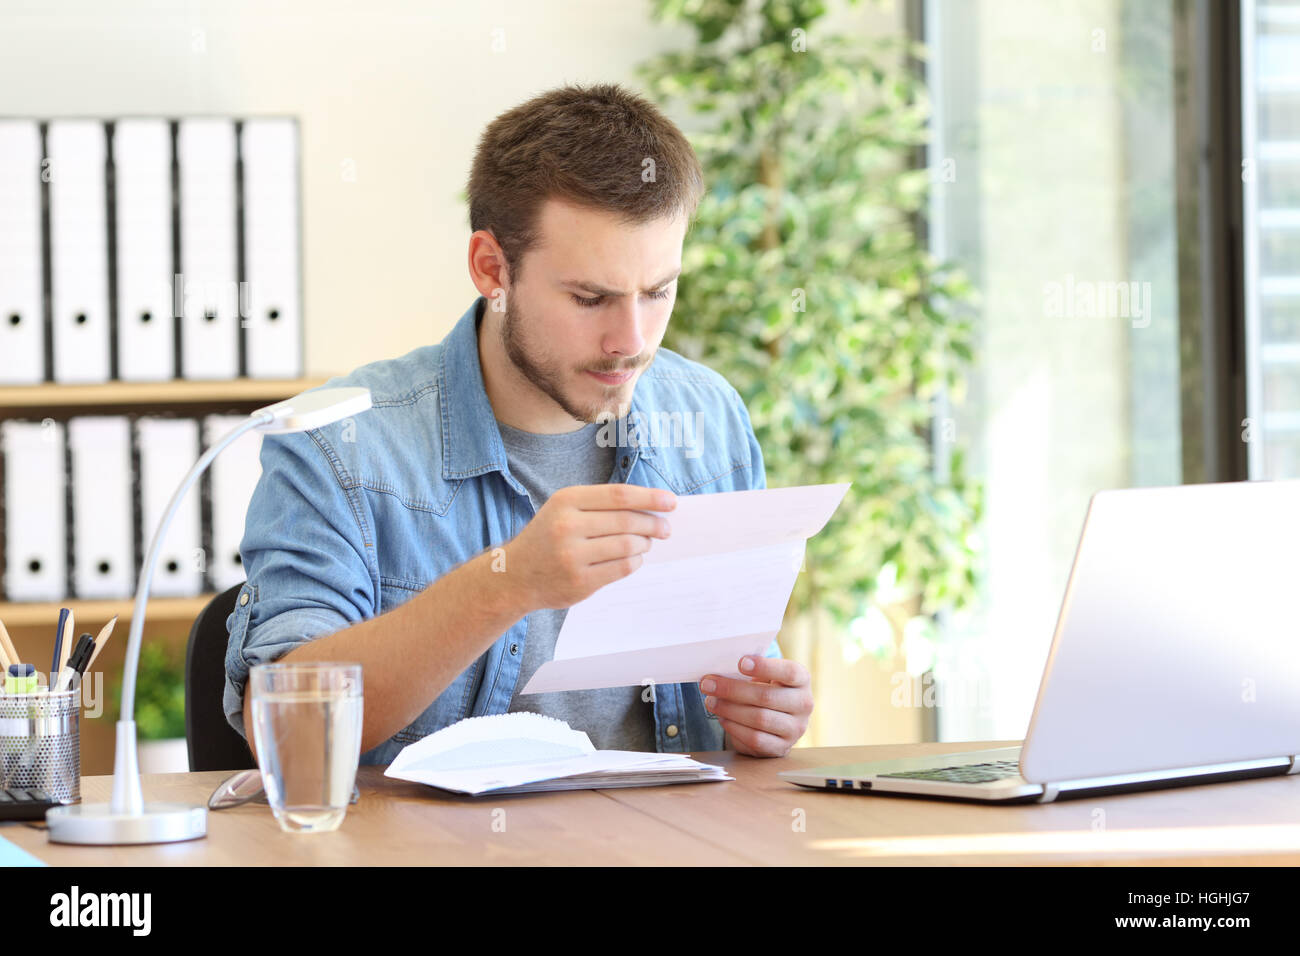 Serious entrepreneur working and reading a letter in a desktop at workplace - Stock Image